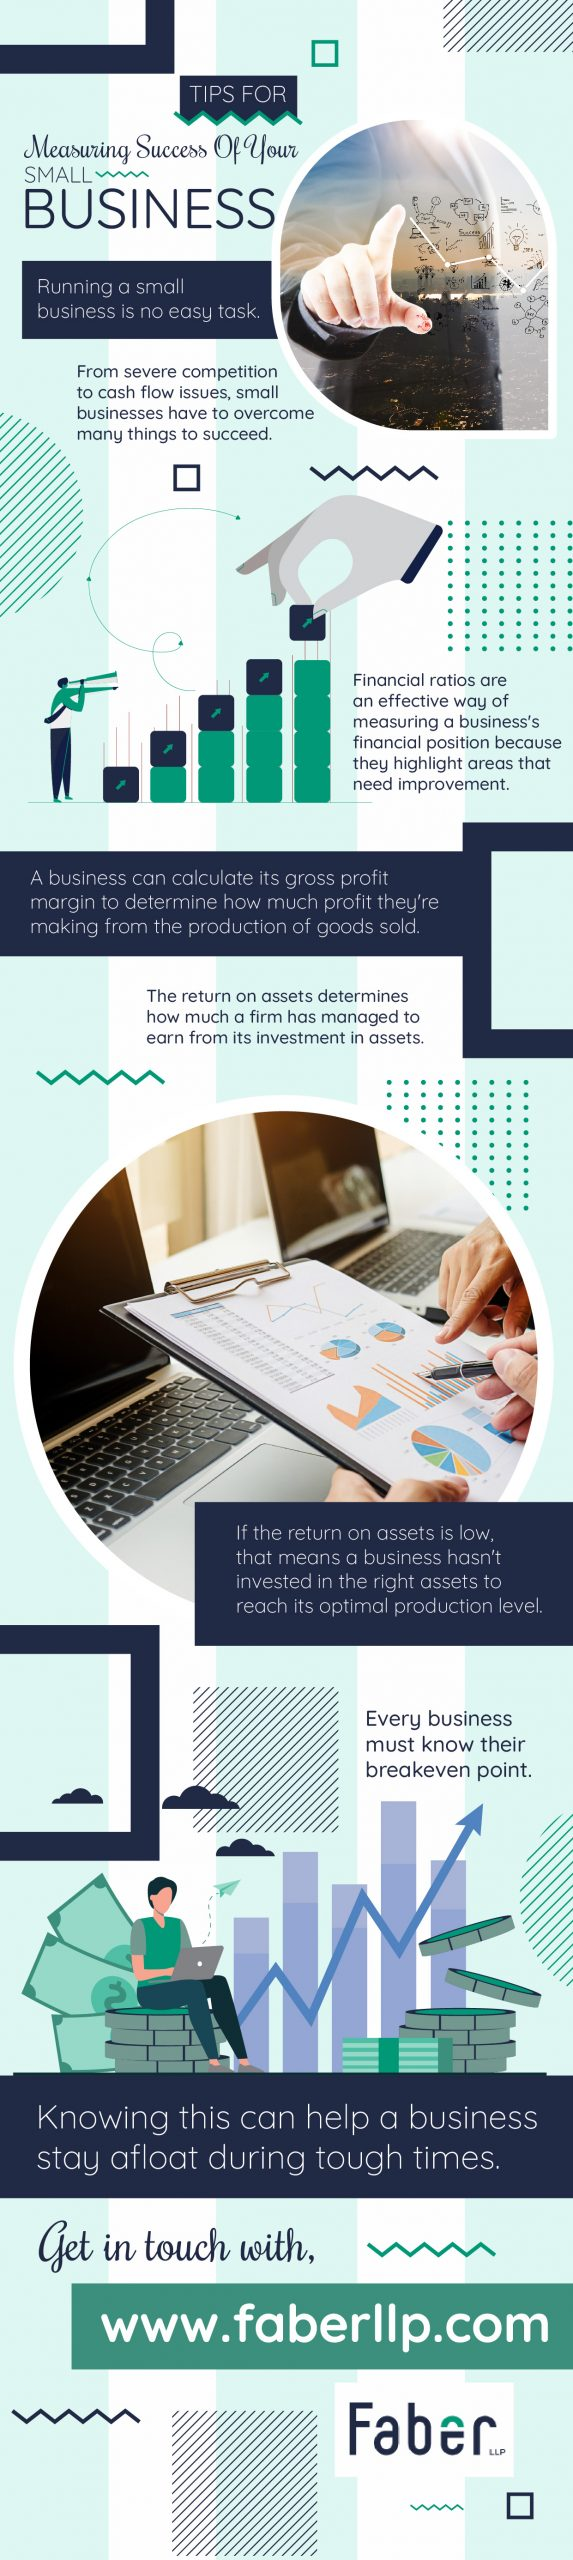 Tips for Measuring Success of your Small Business - Infograph